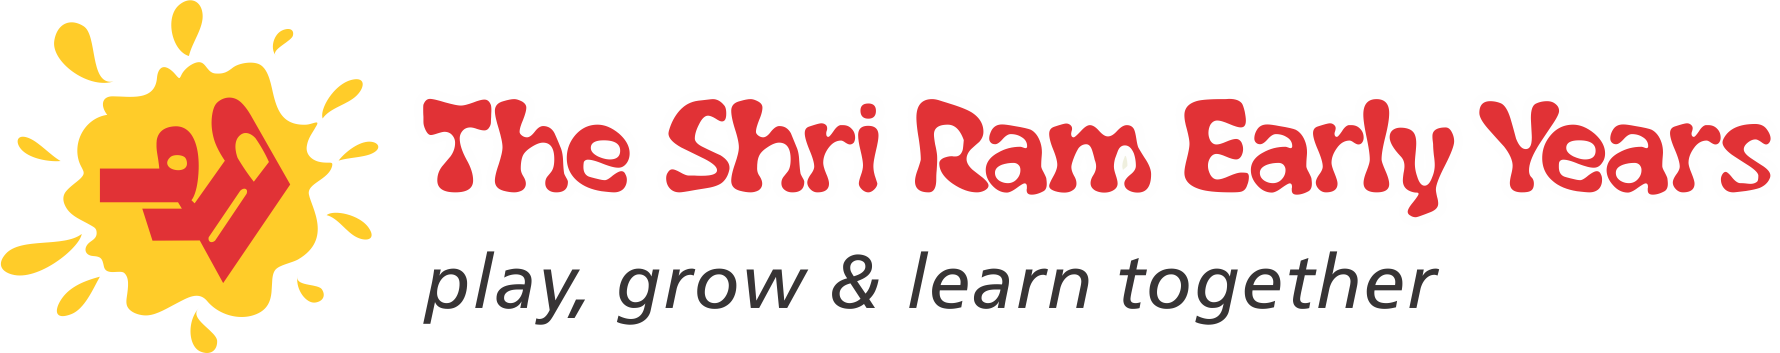 Parent orientation at The Shri Ram Early Years